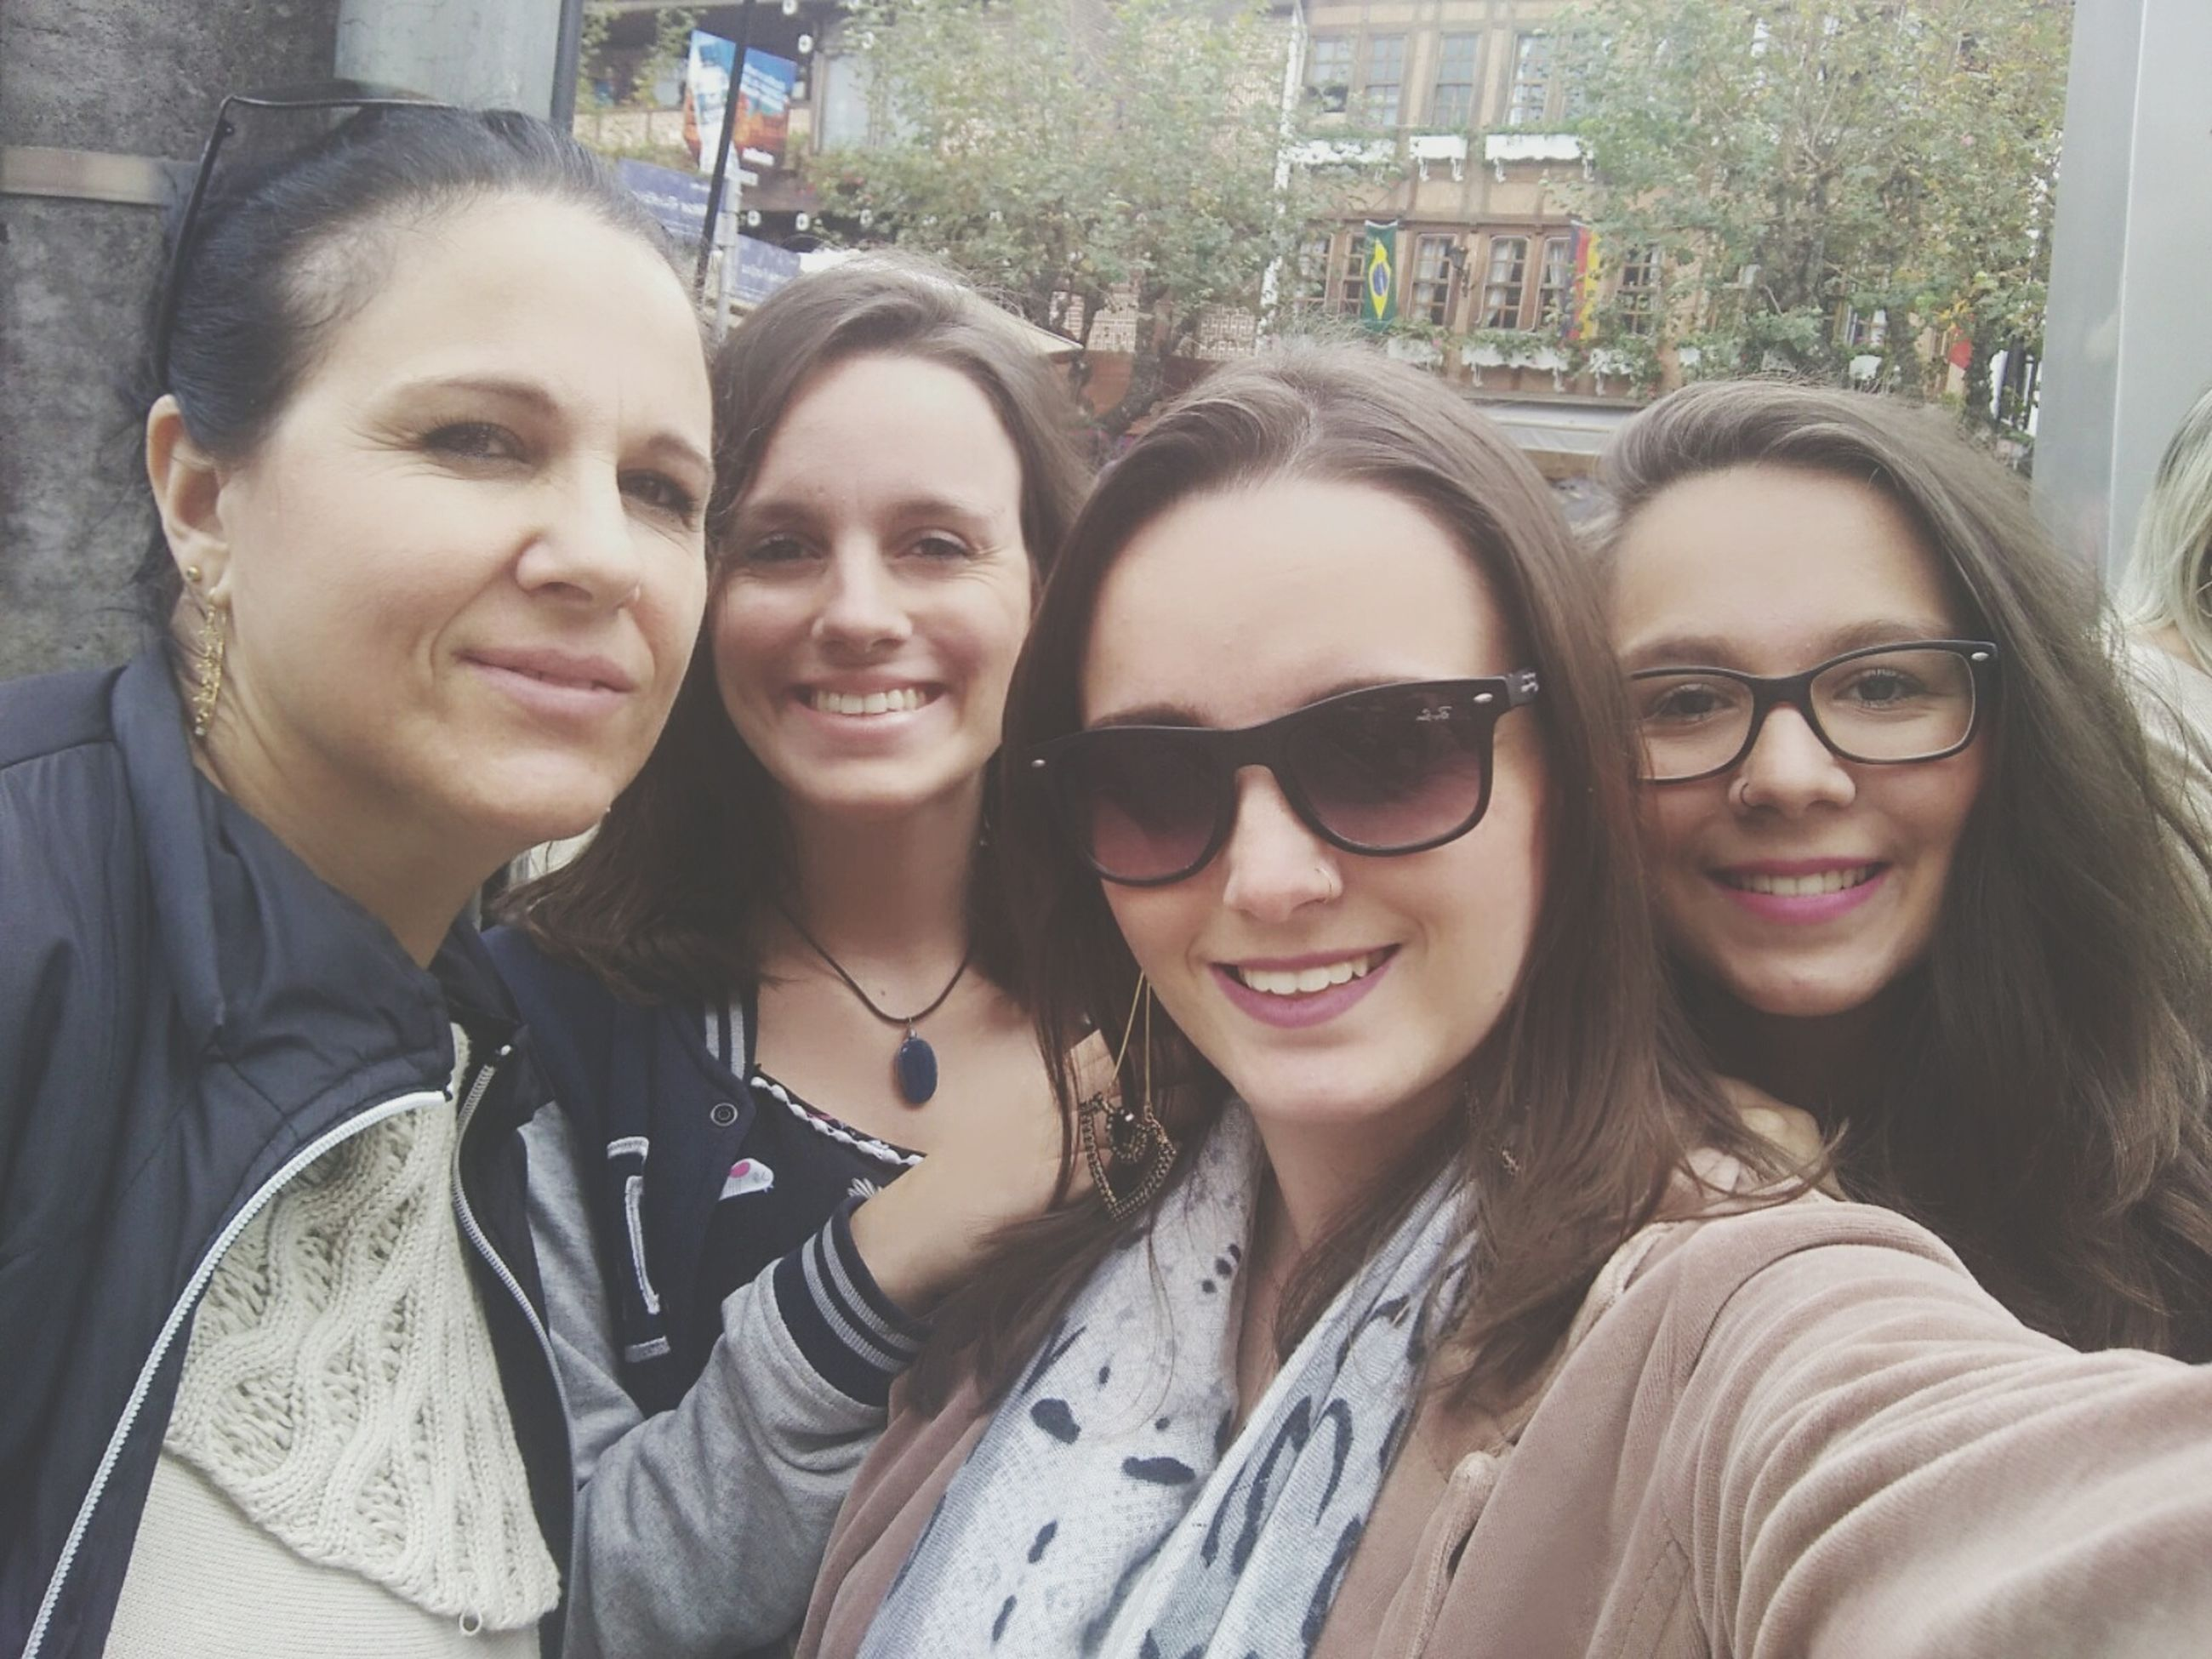 selfie, smiling, portrait, friendship, togetherness, looking at camera, happiness, photography themes, real people, outdoors, day, young adult, people